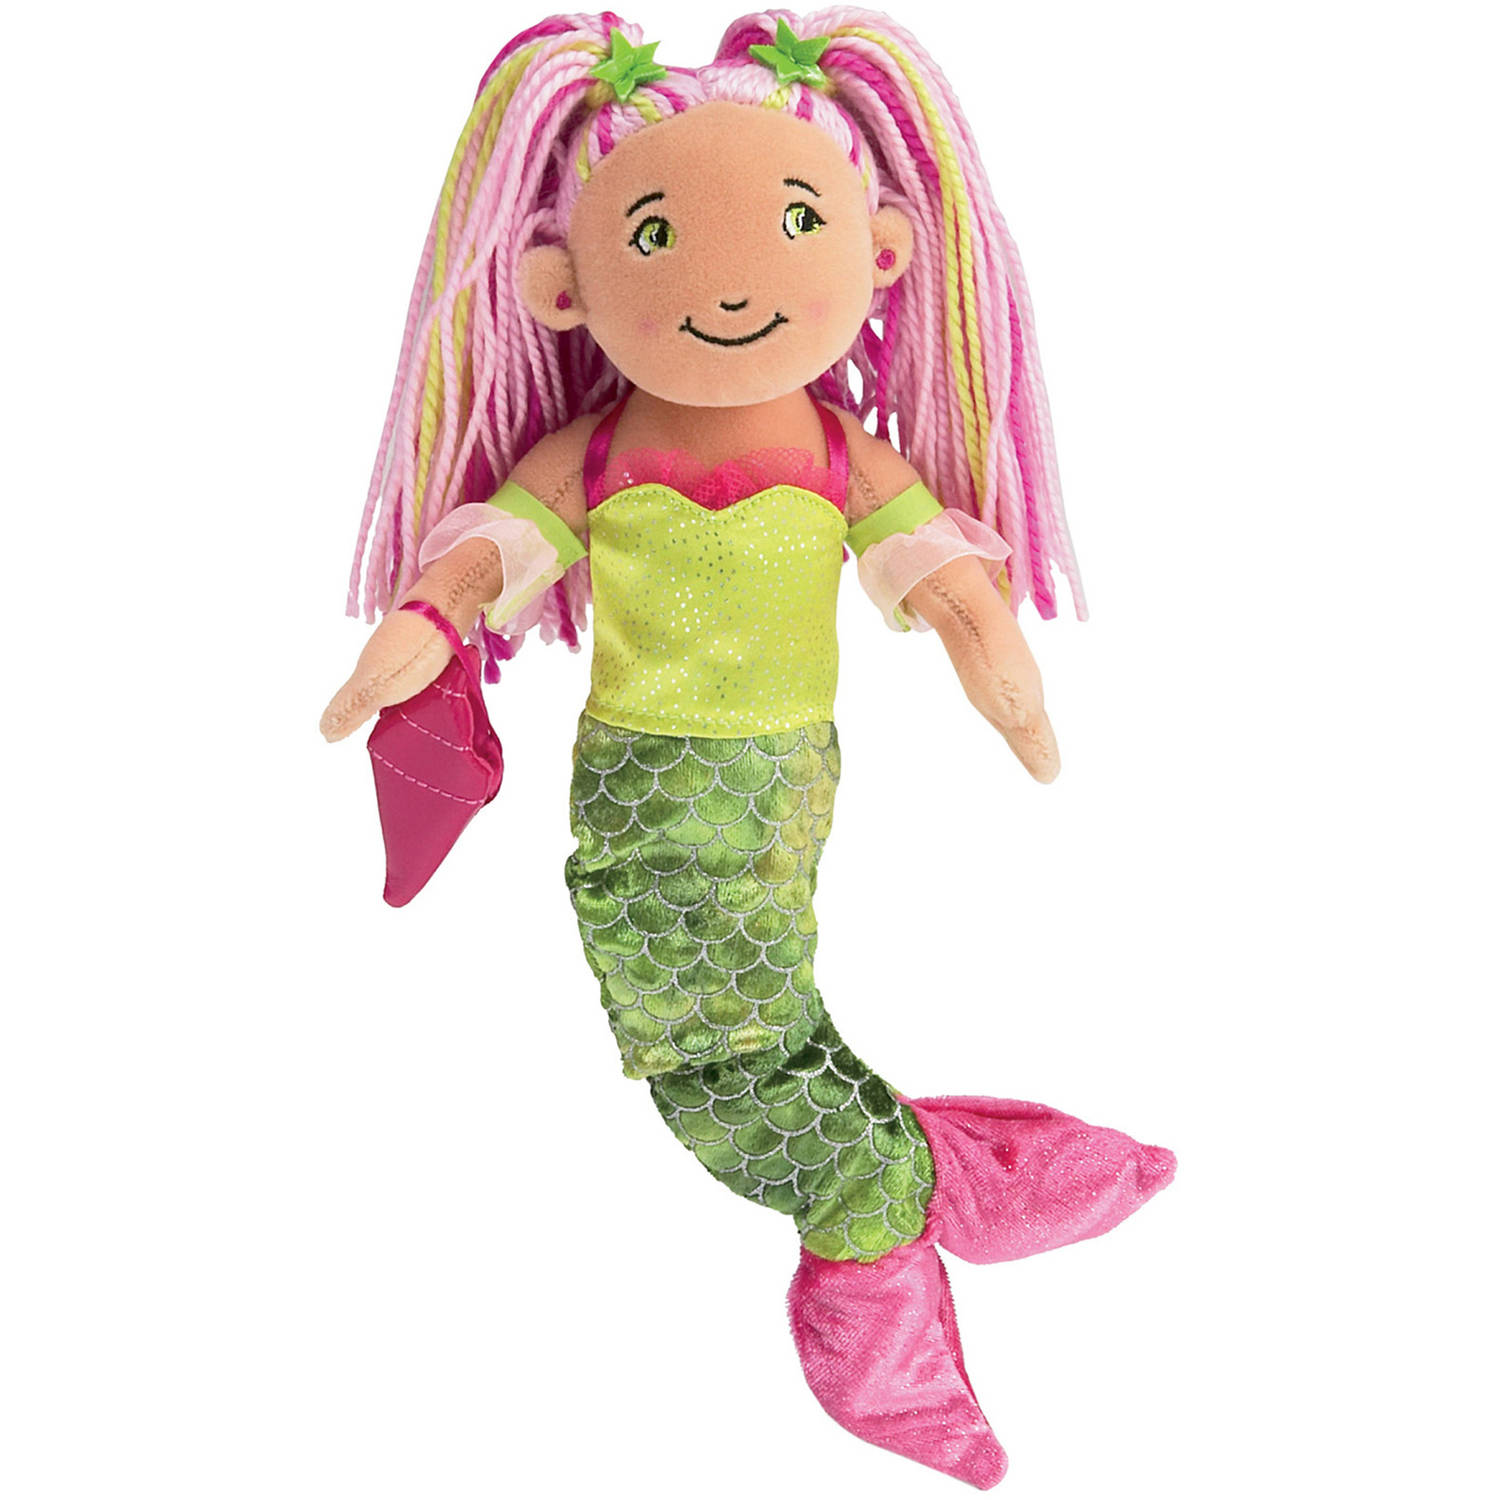 Manhattan Toy Groovy Girls, MacKenna Mermaid Fashion Doll